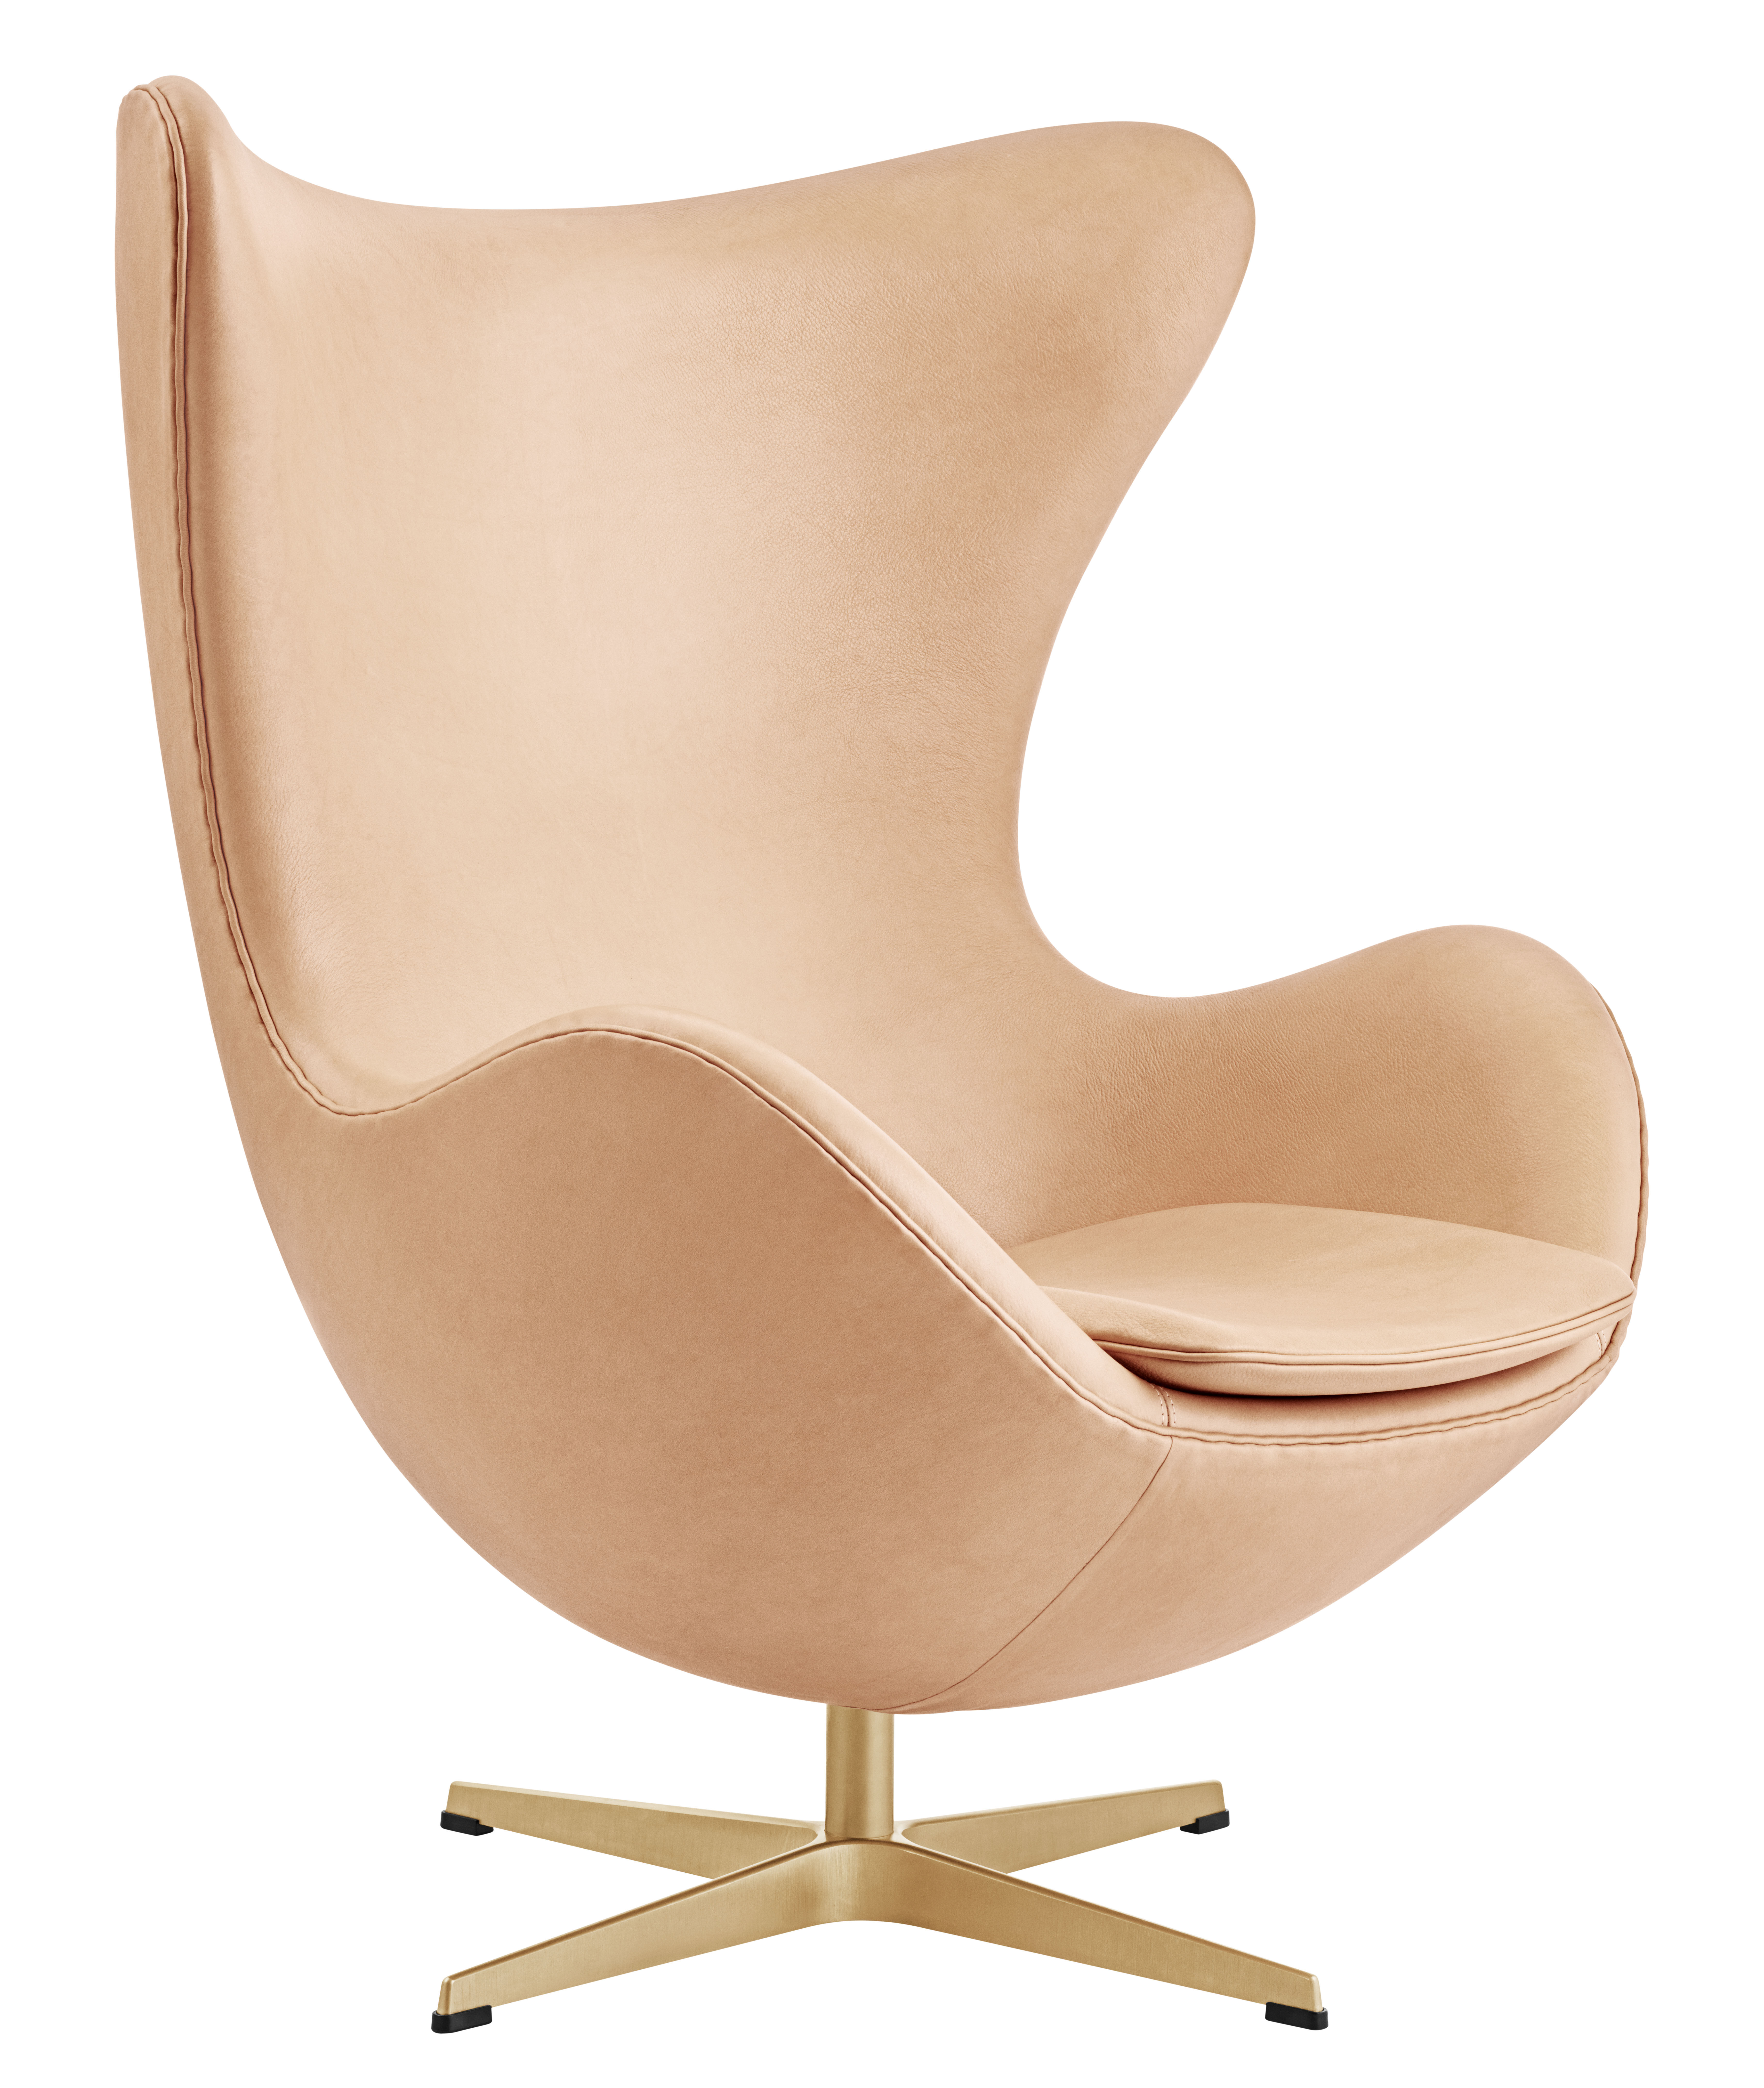 egg chair swivel armchair leather gold 60 year. Black Bedroom Furniture Sets. Home Design Ideas